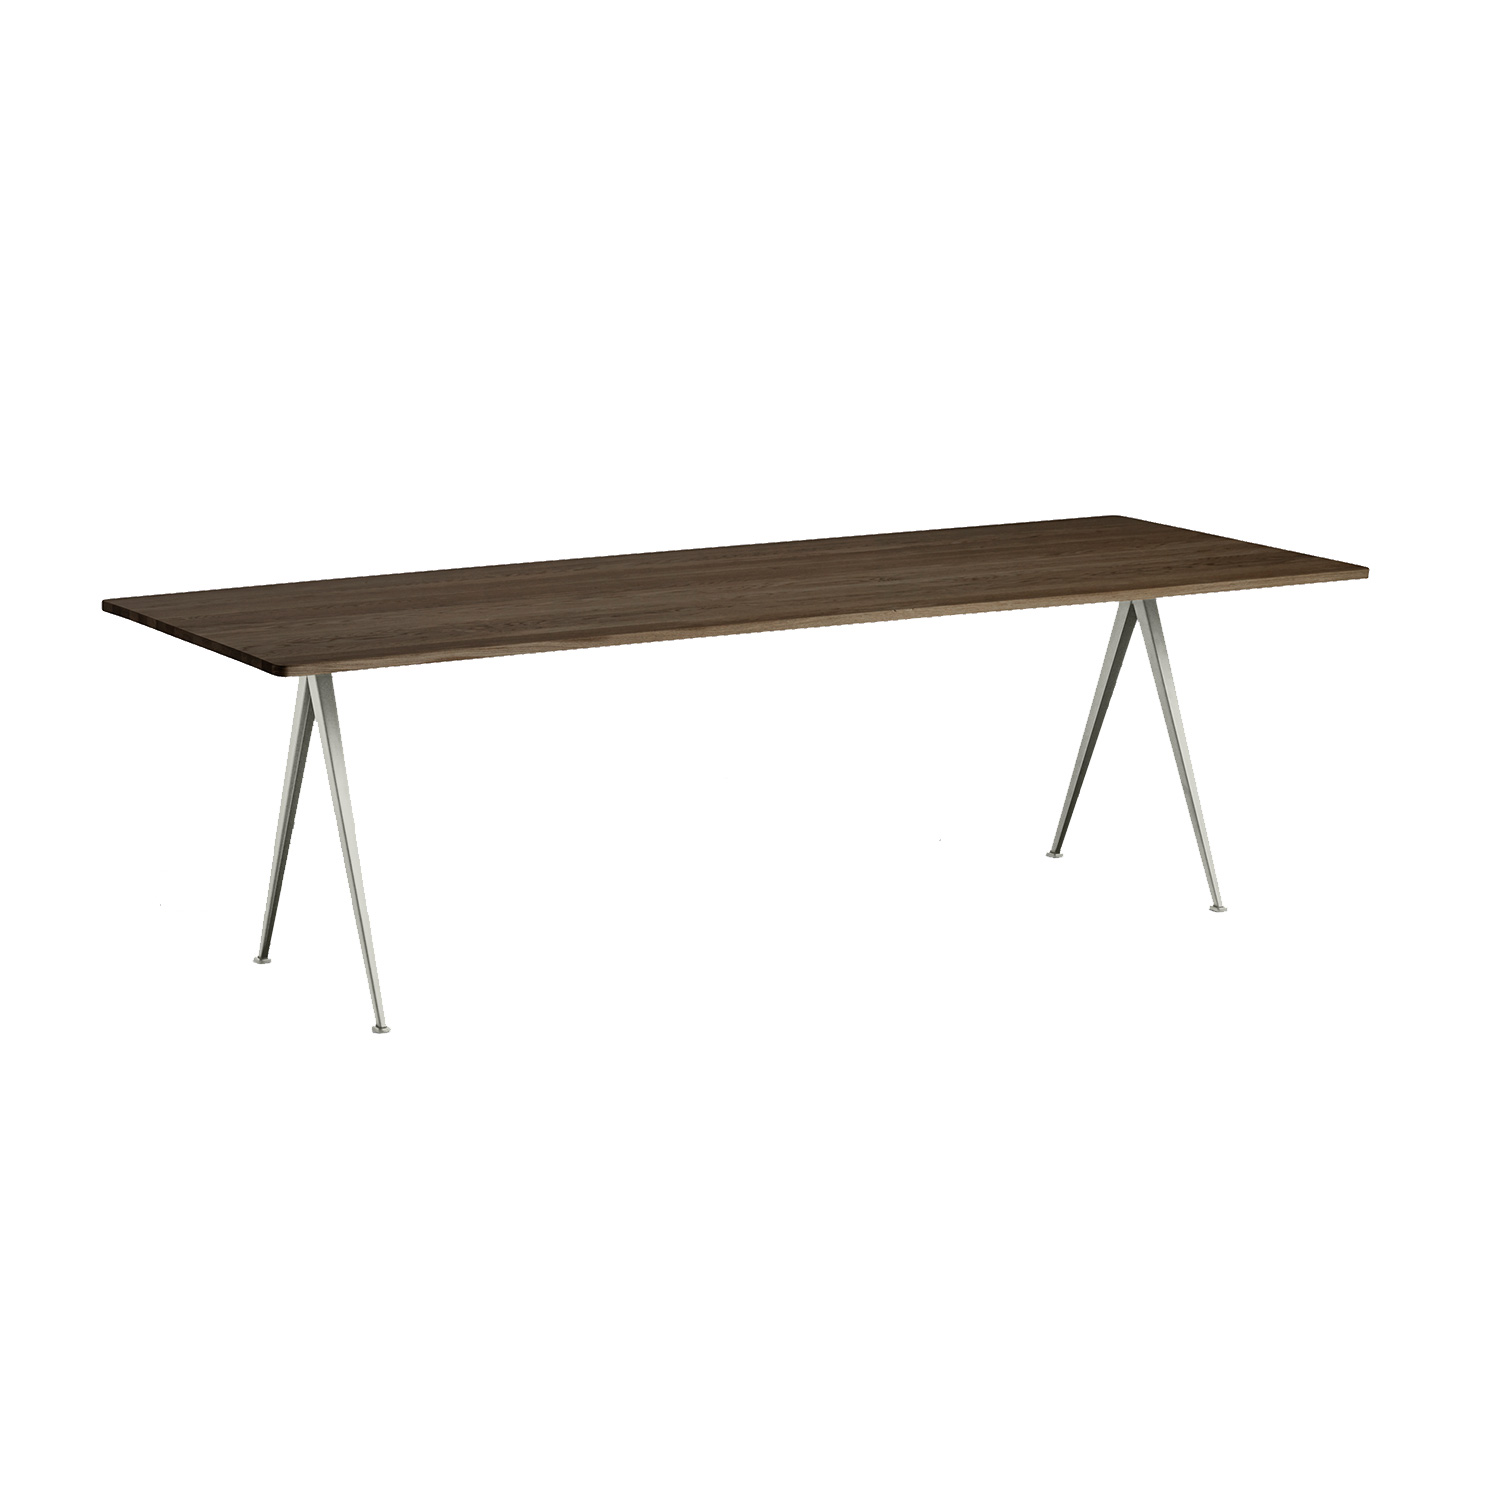 Pyramid table 02 250x85, beige frame/smoked